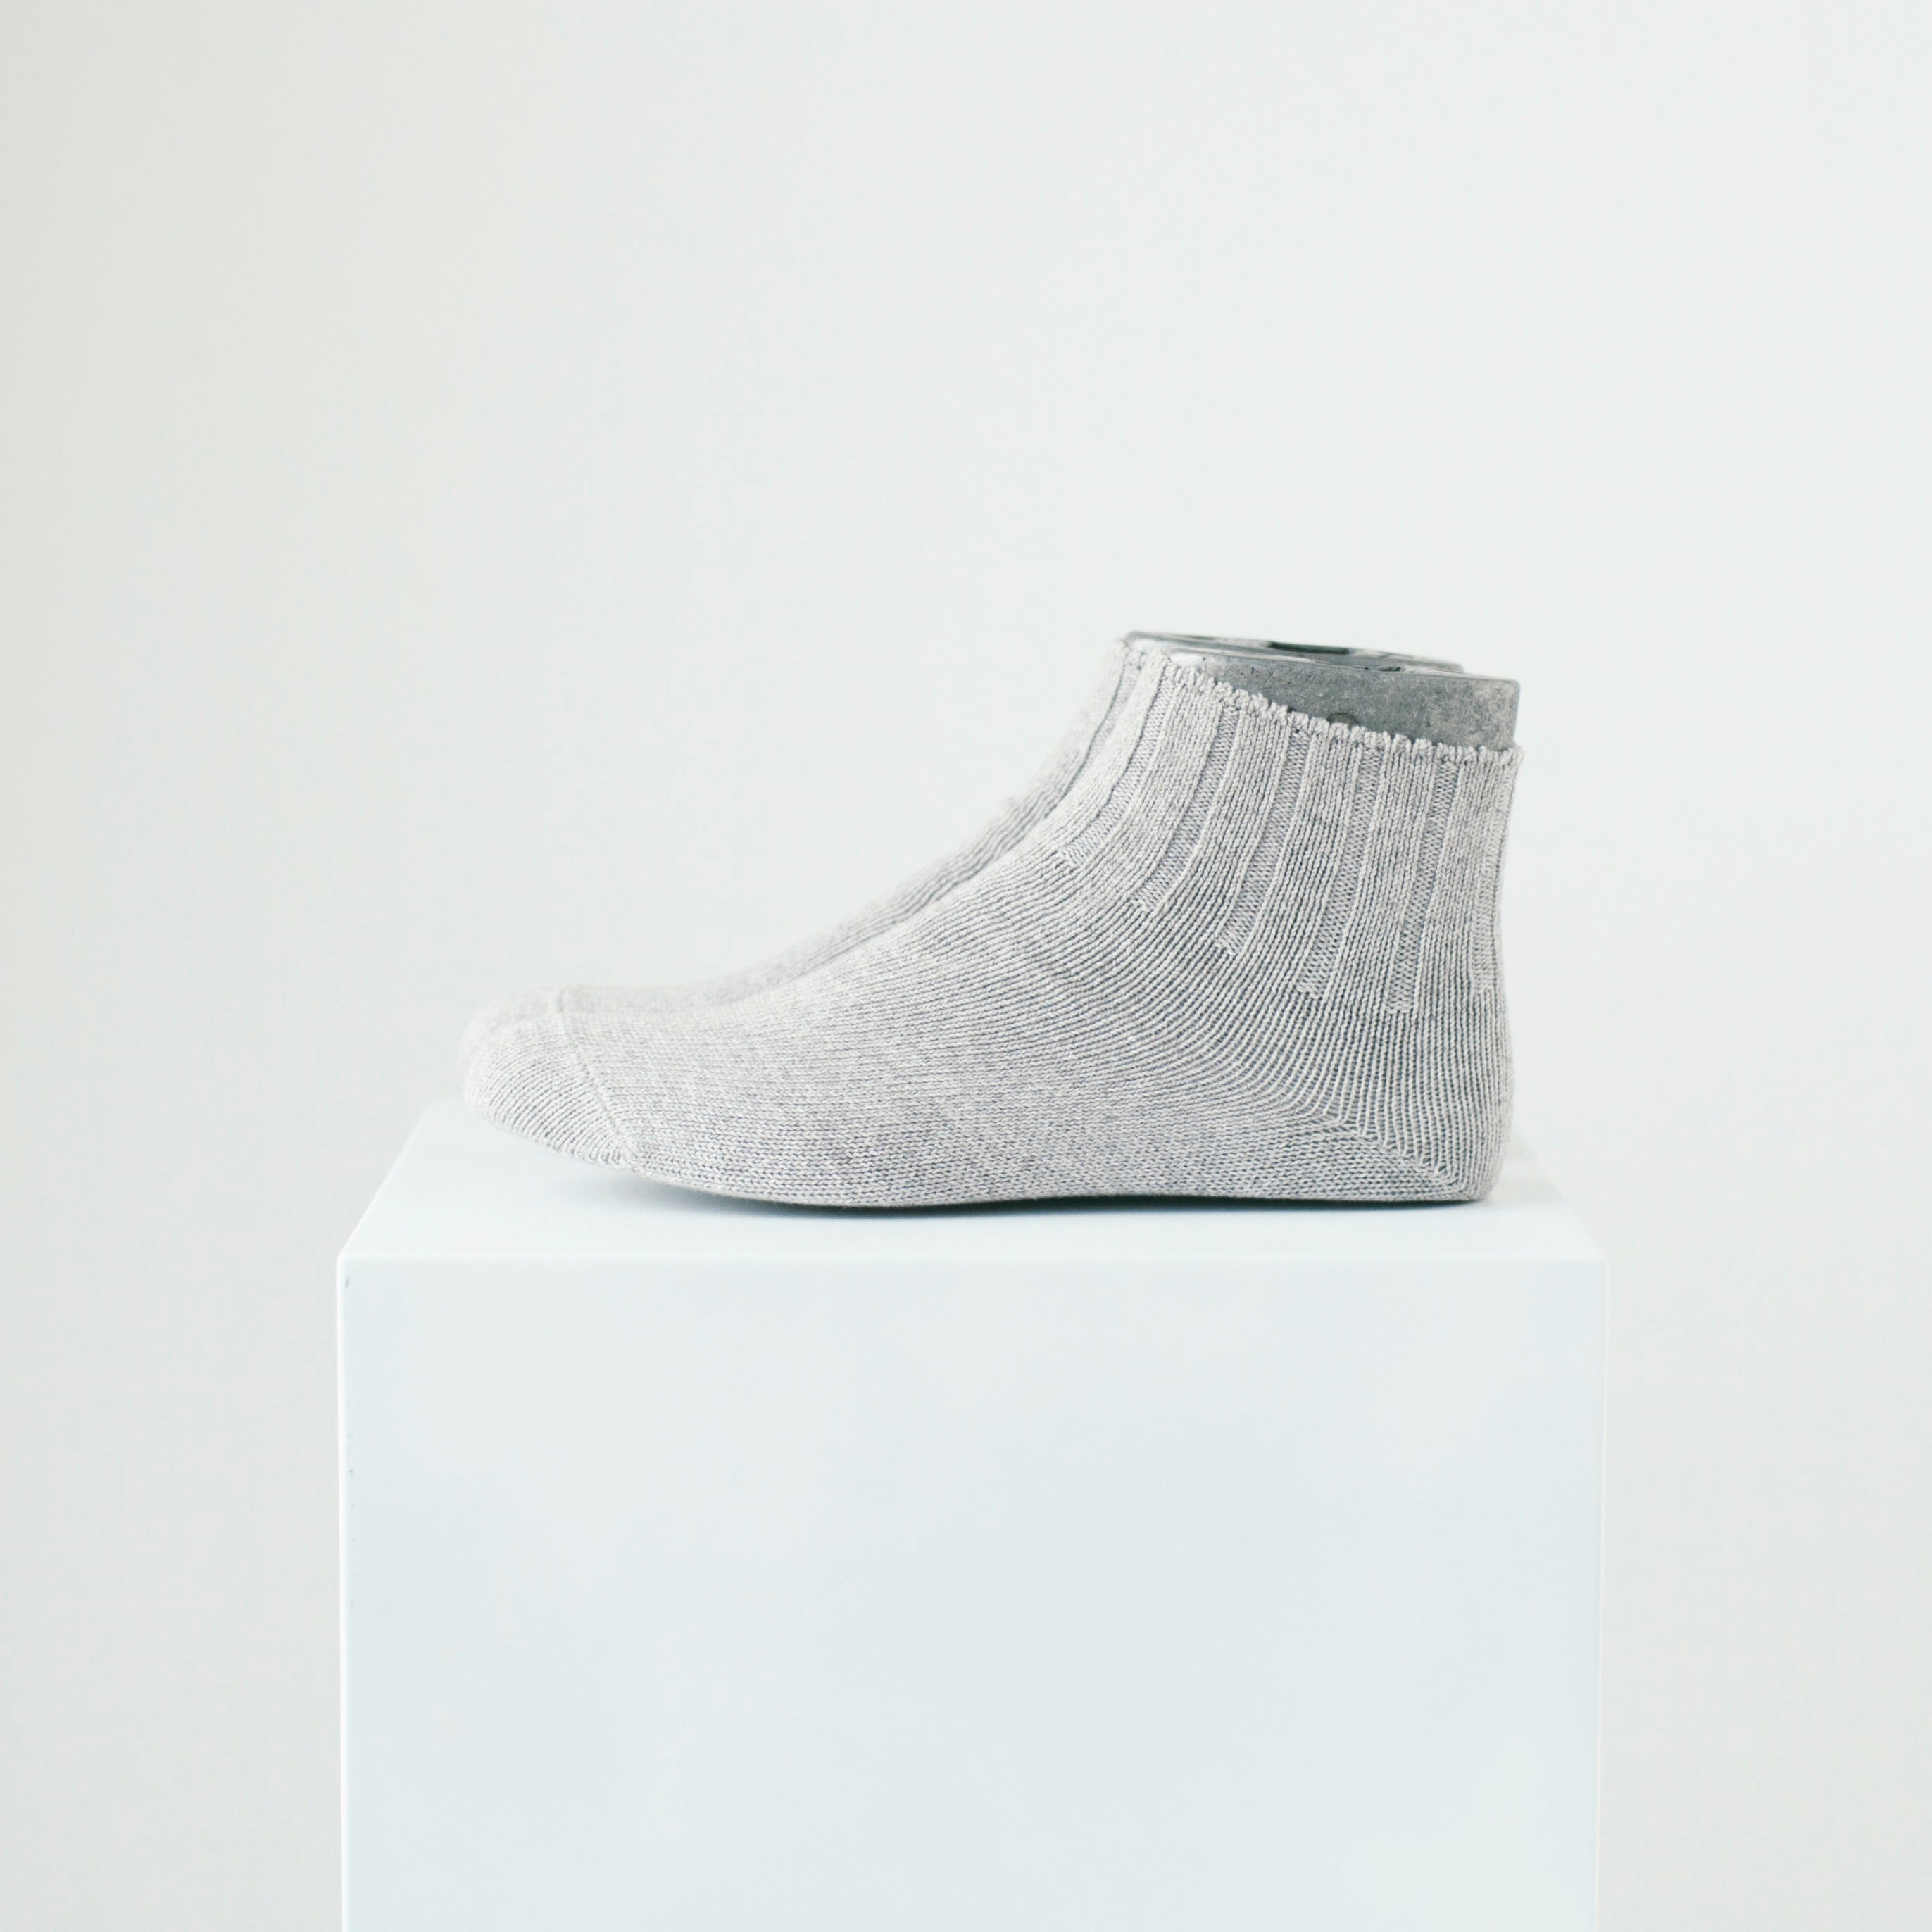 3 PAIRS BOX (WHITE, GRAY, BLACK)